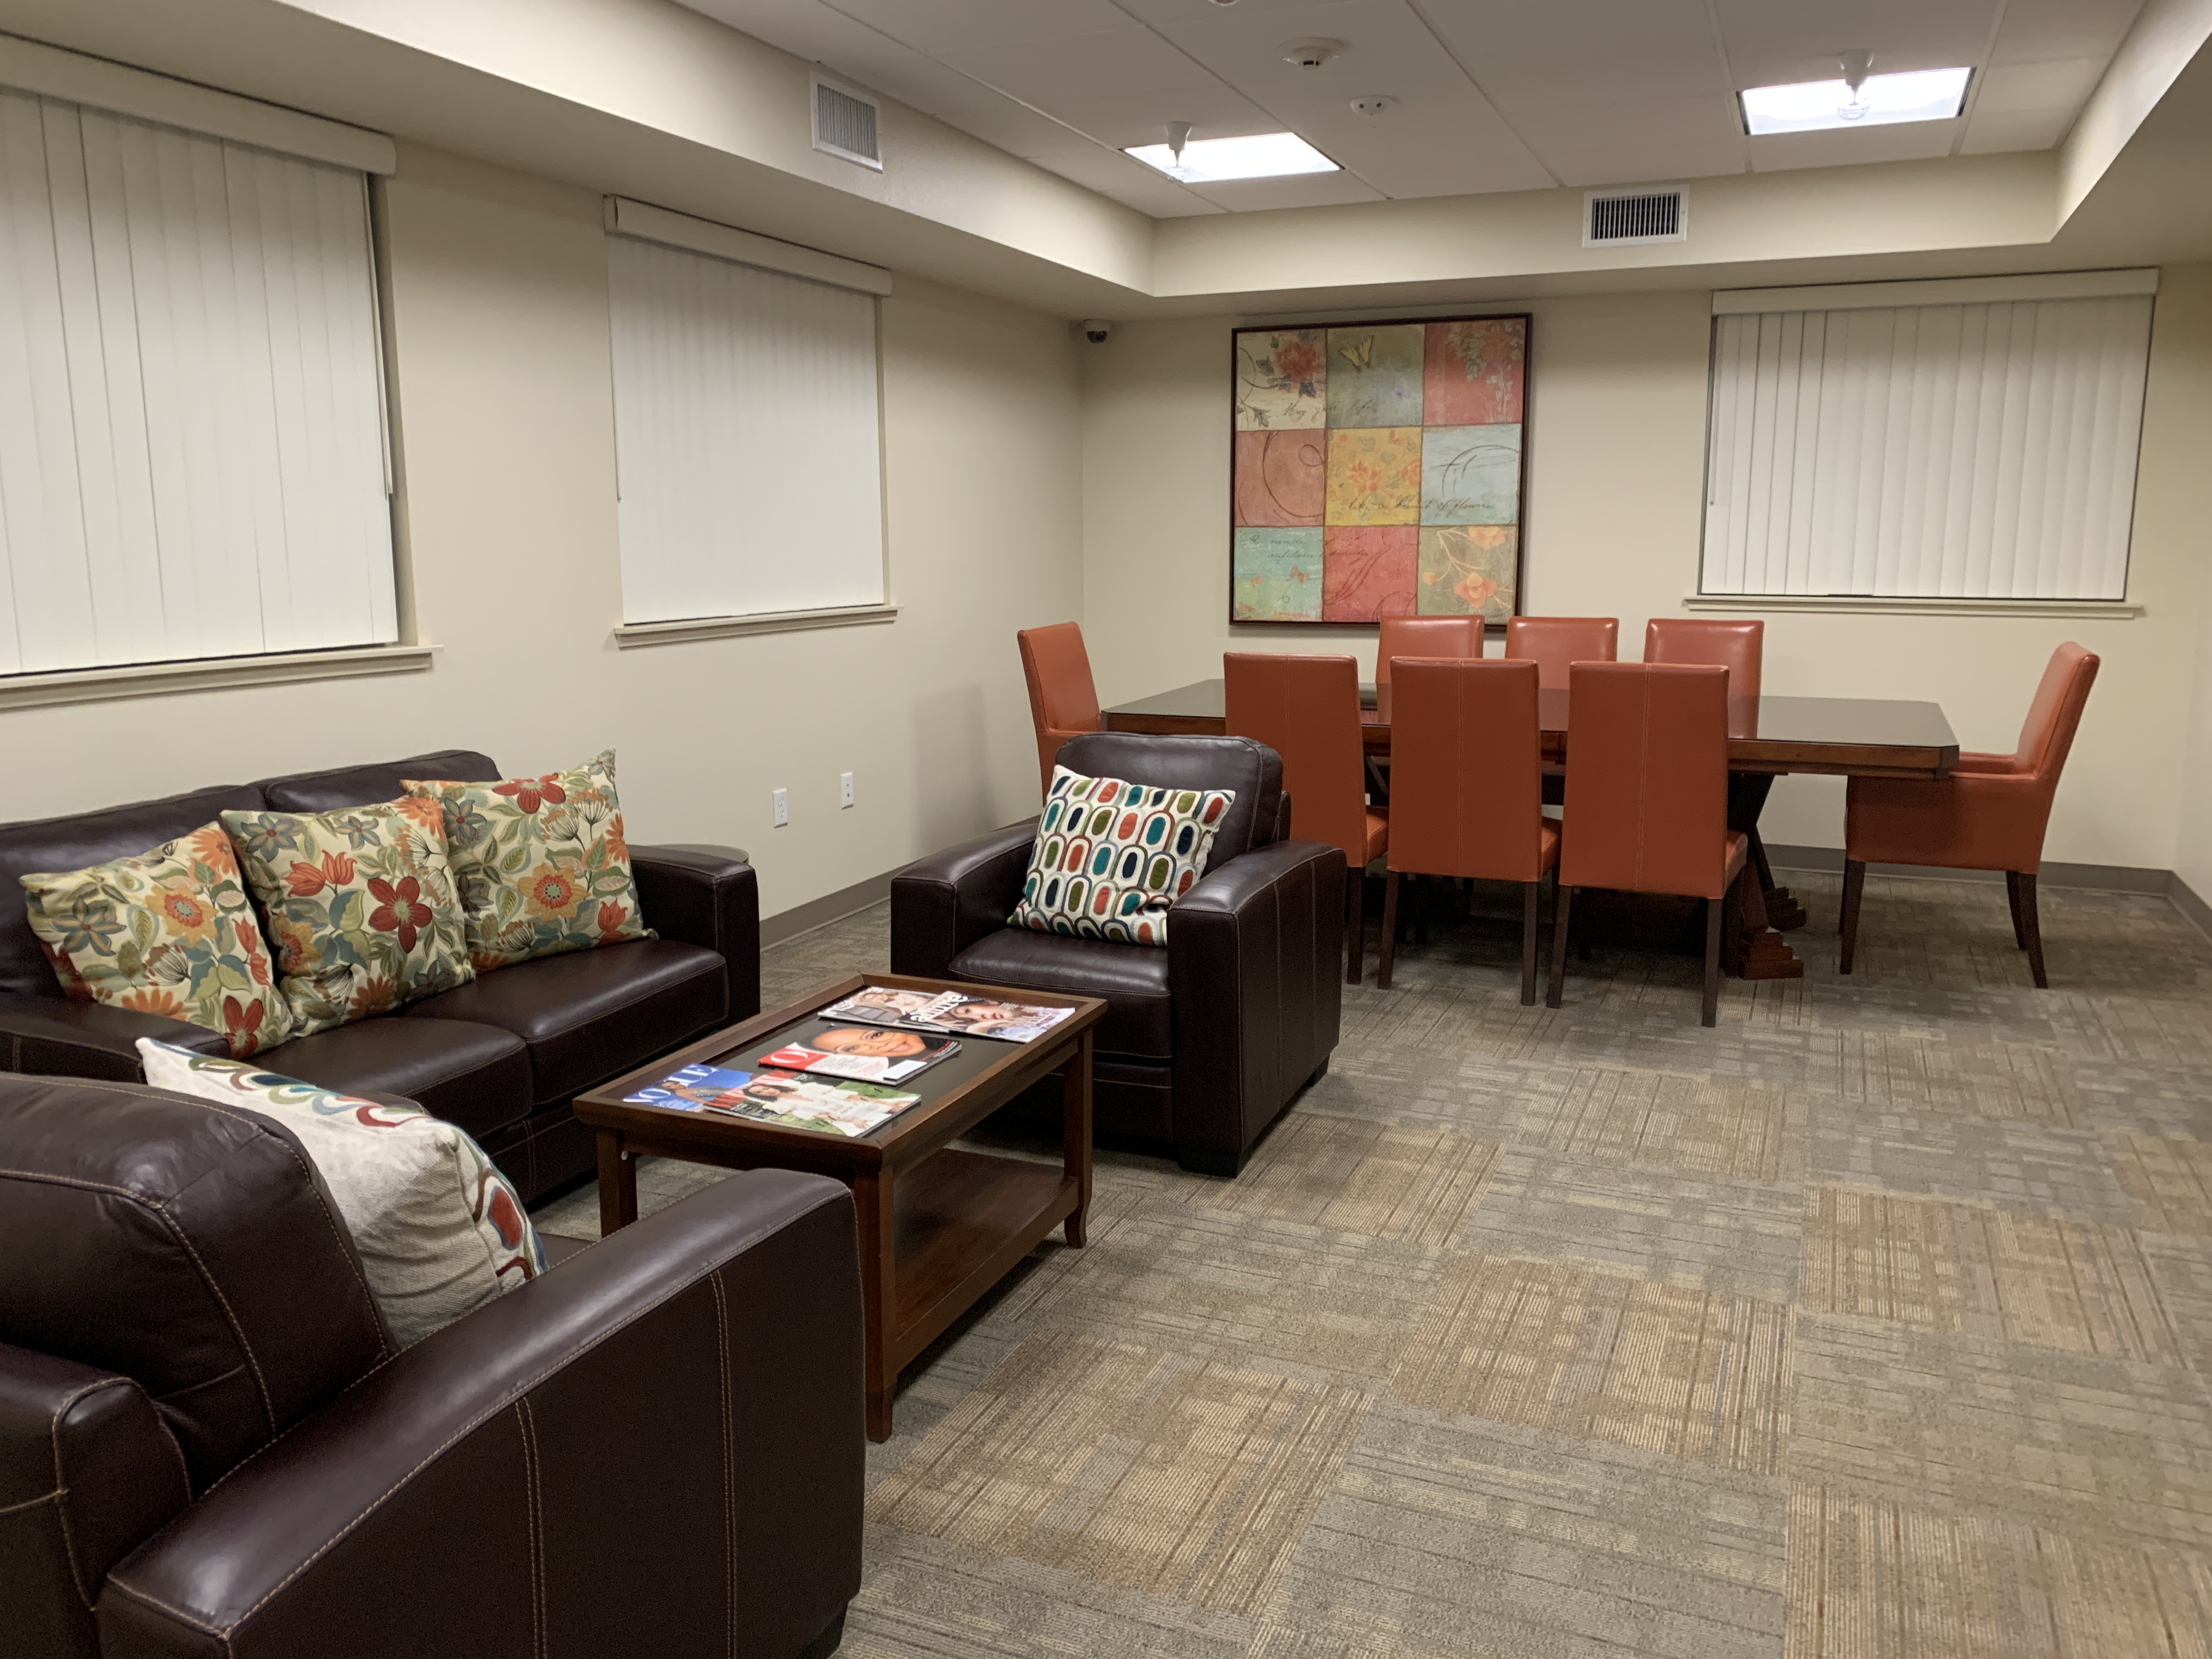 Conference room with a couch, two sofa chairs, a coffee table, and a conference table.